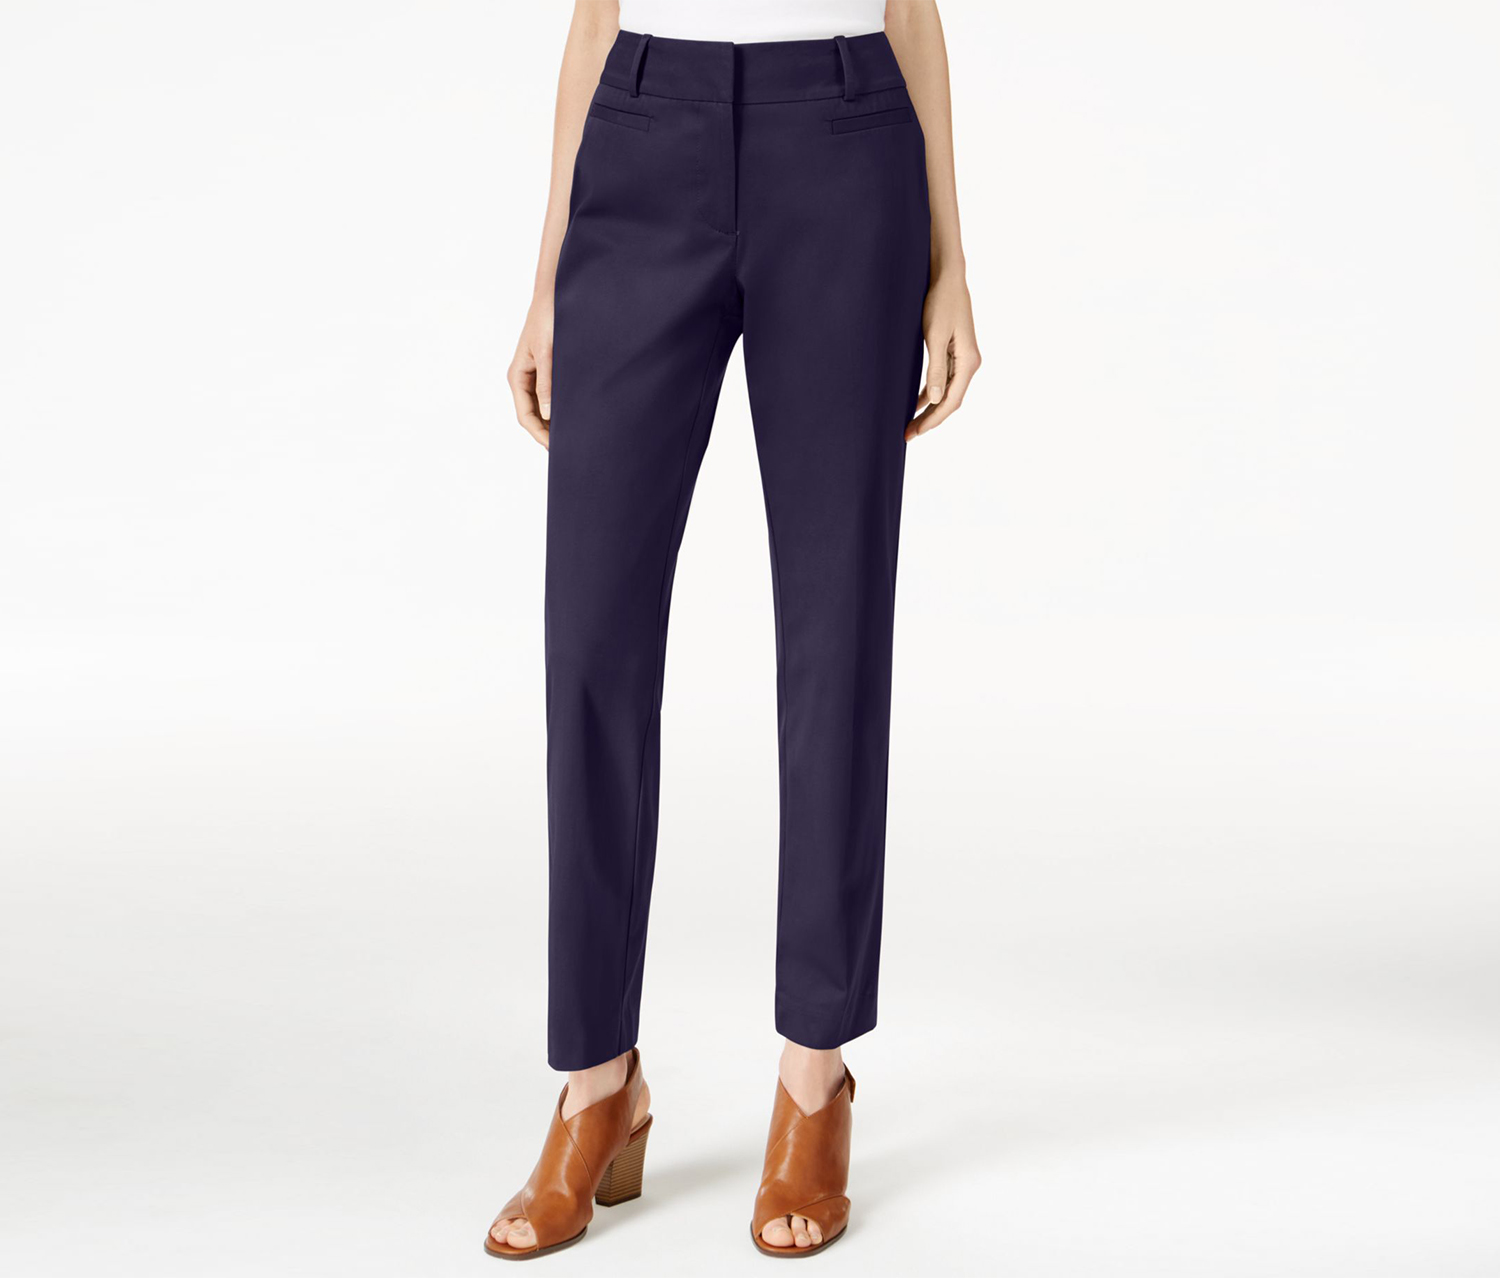 Style Co Petite Slim-Fit Cropped Pants, Industrial Blue